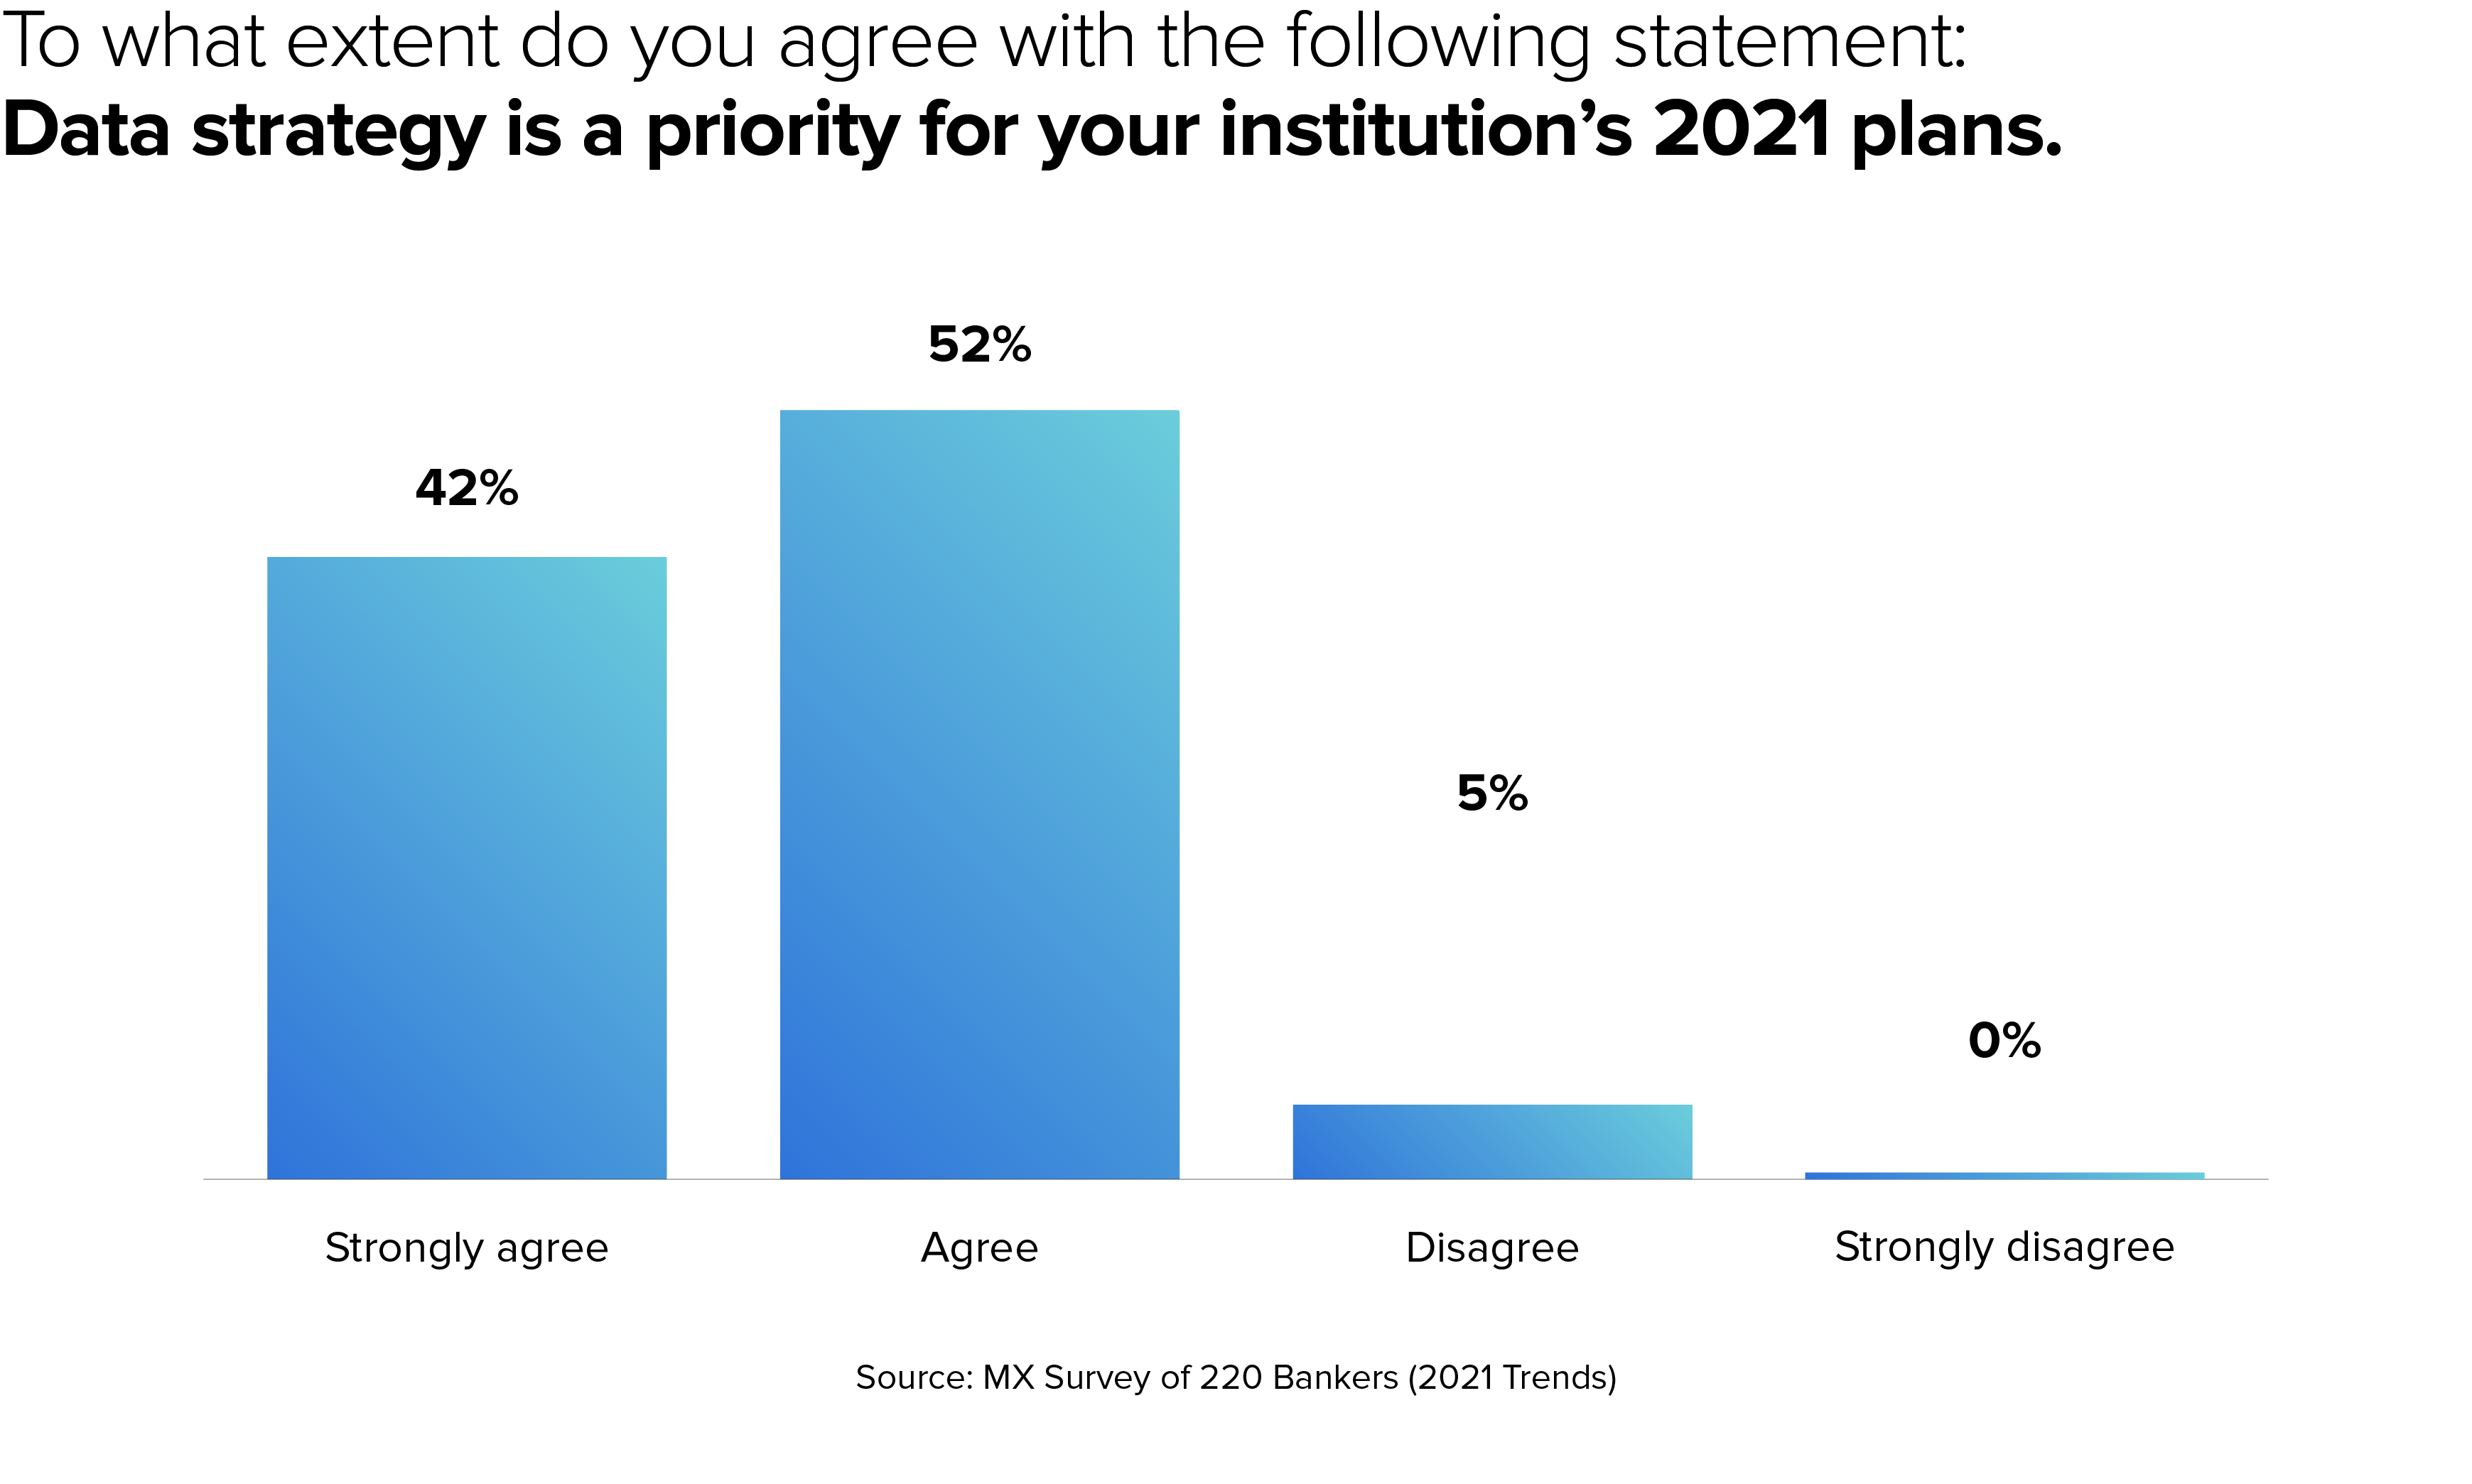 bank data priorities 2021